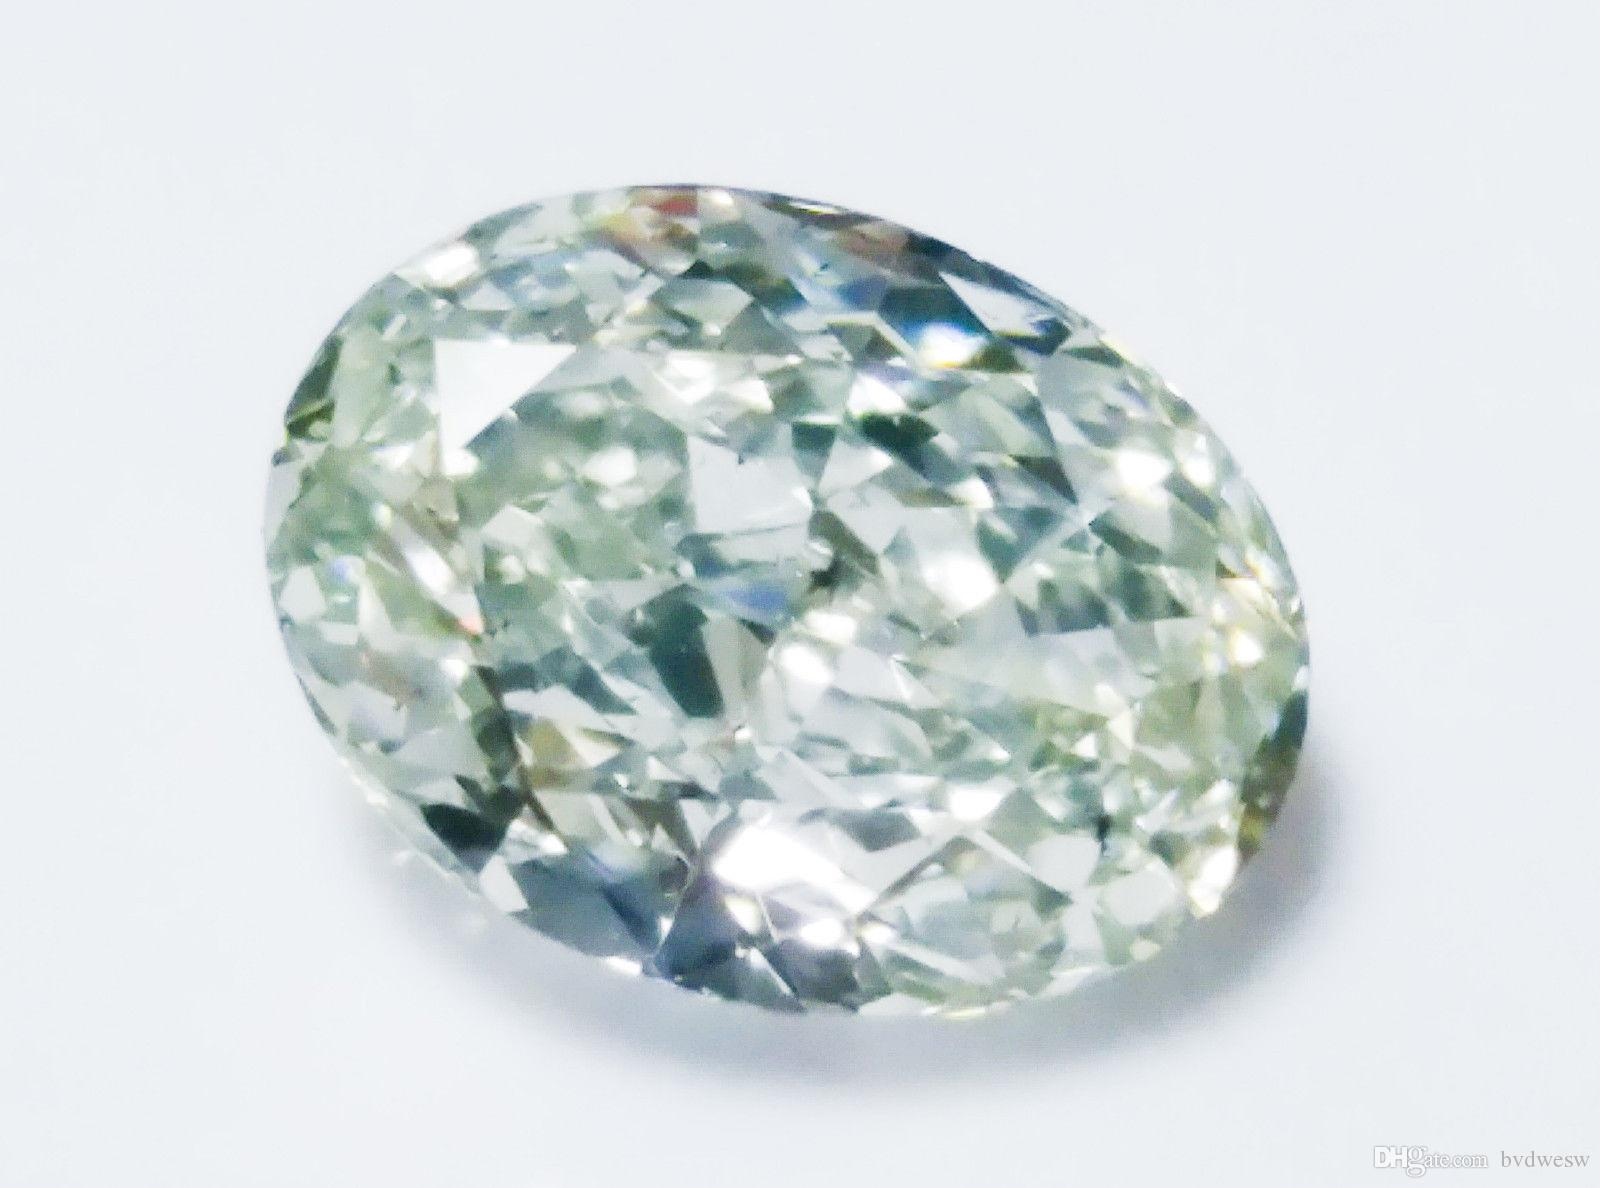 with weighing at kind estimated extraordinary shape carat heart its pleasing ct to green up of chee orange an a intense live light diamond hua is fancy large kee this representative uncommonly carats for